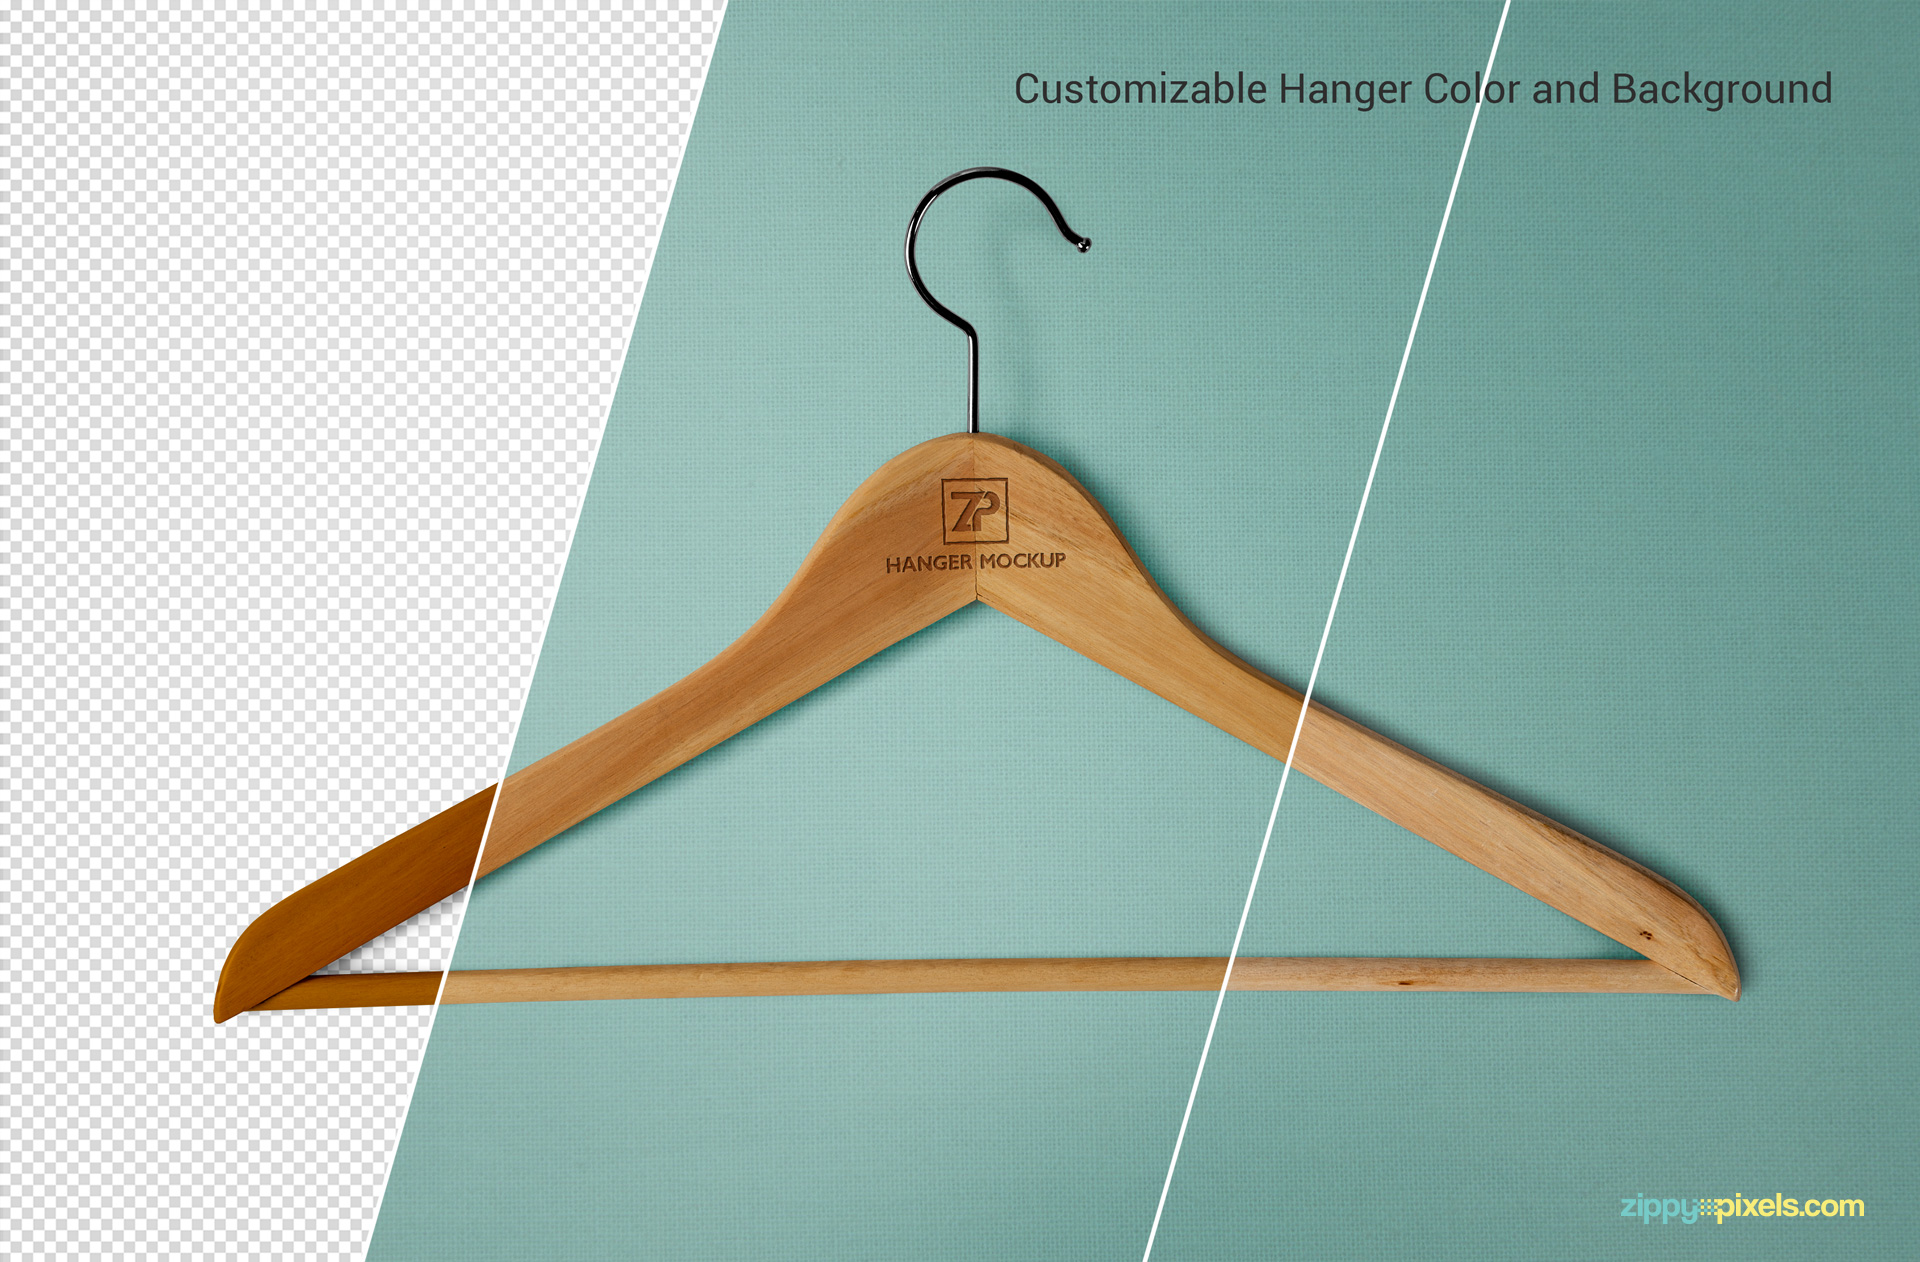 The editable features of the cloth hanger mockup.